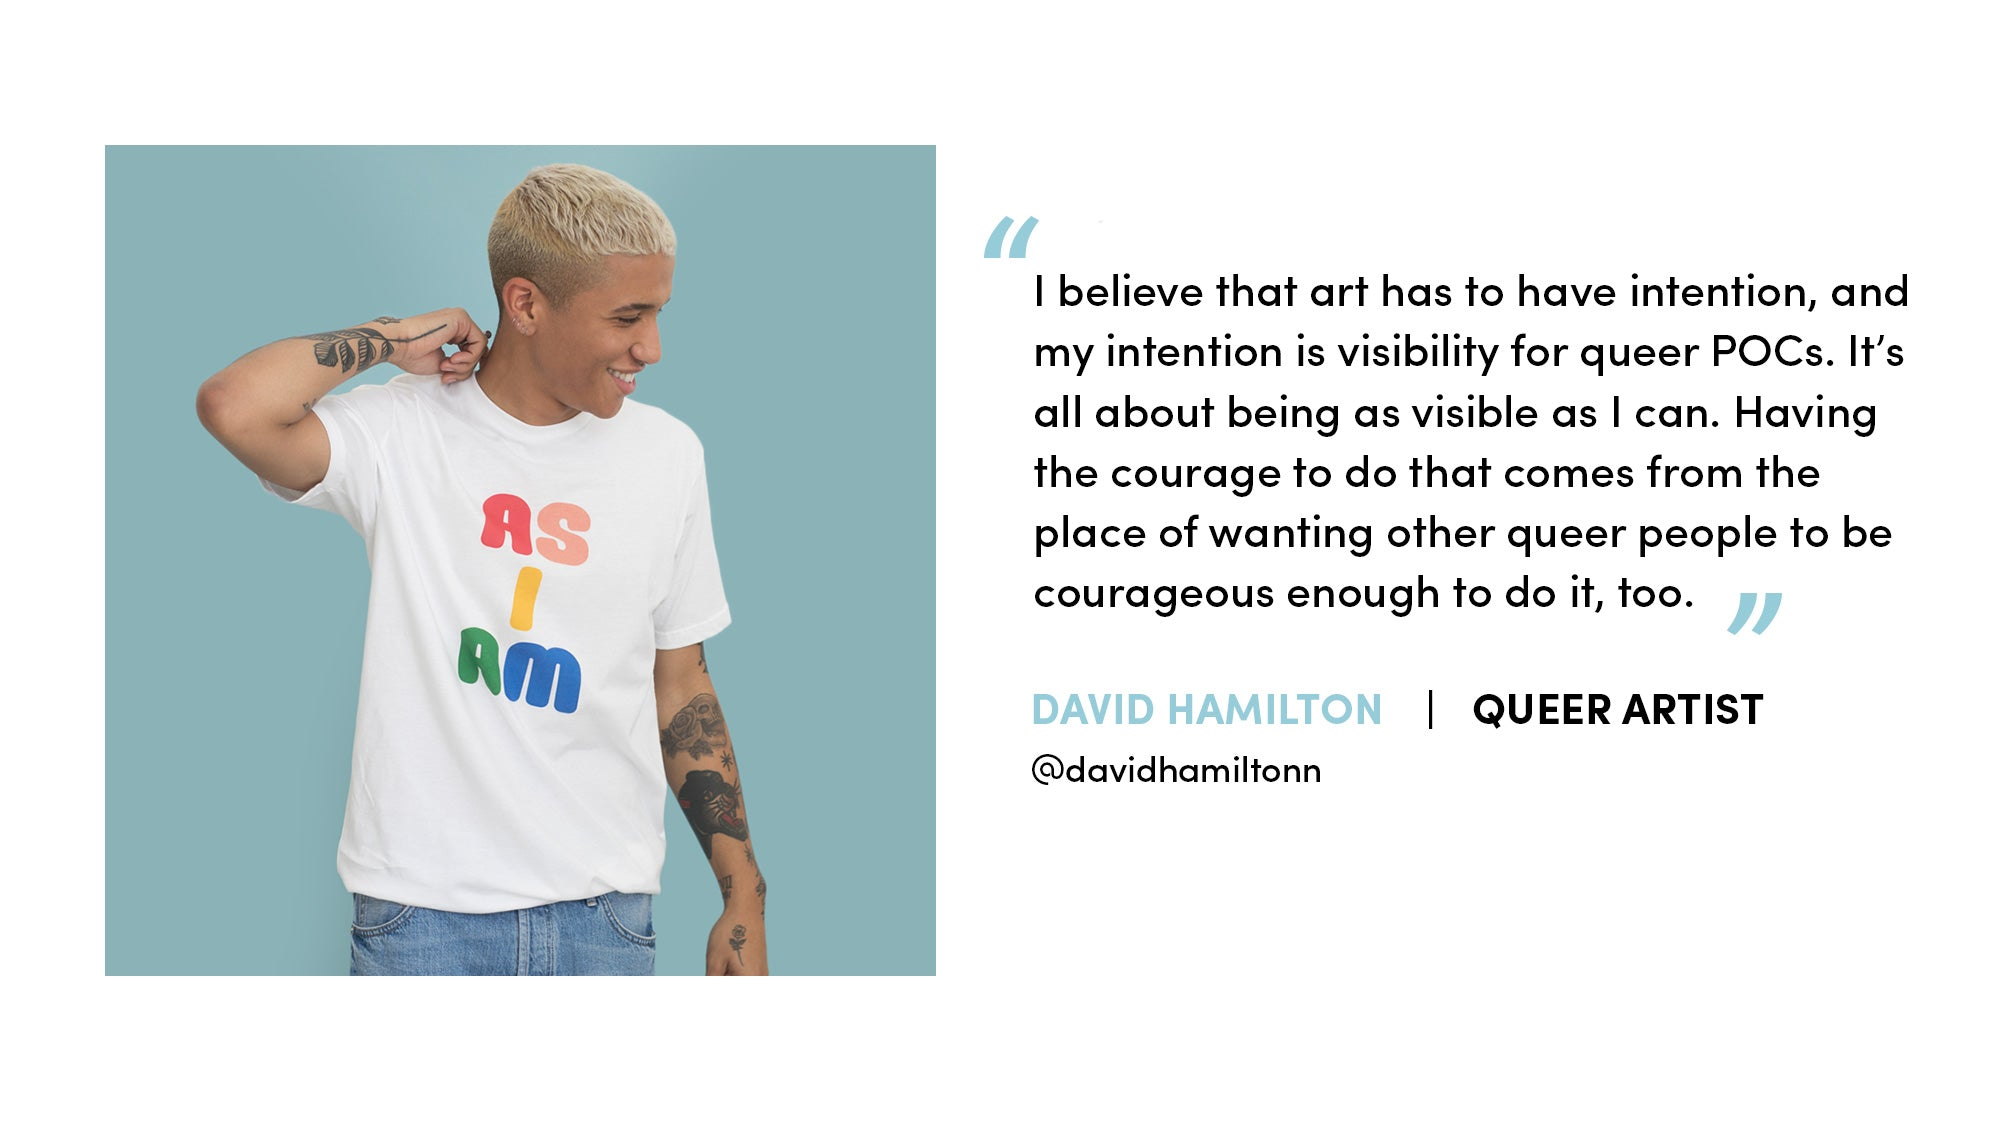 David Hamilton photo and quote